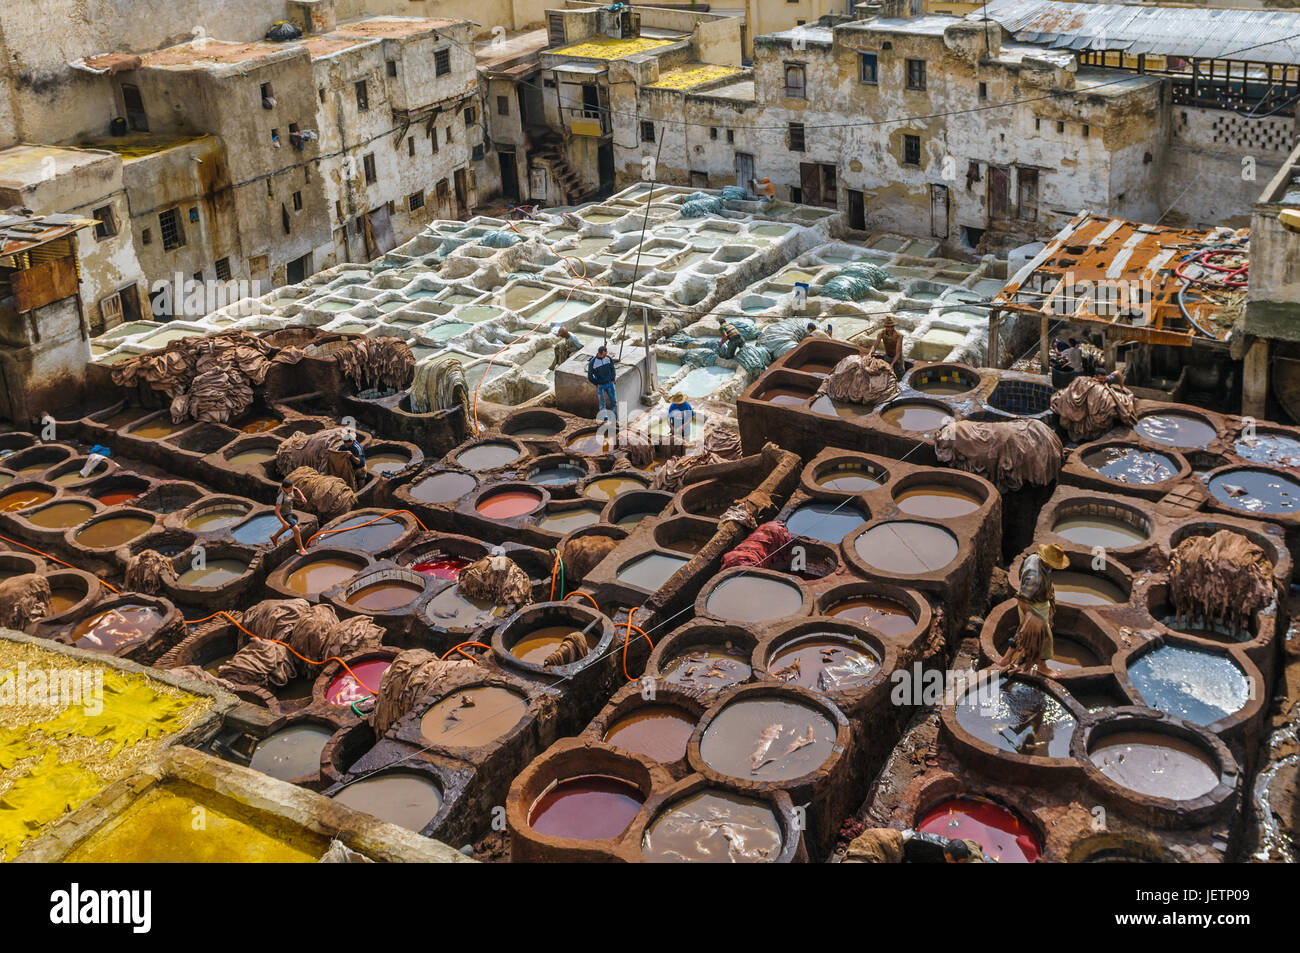 Tannery in Fez, Morocco - Stock Image